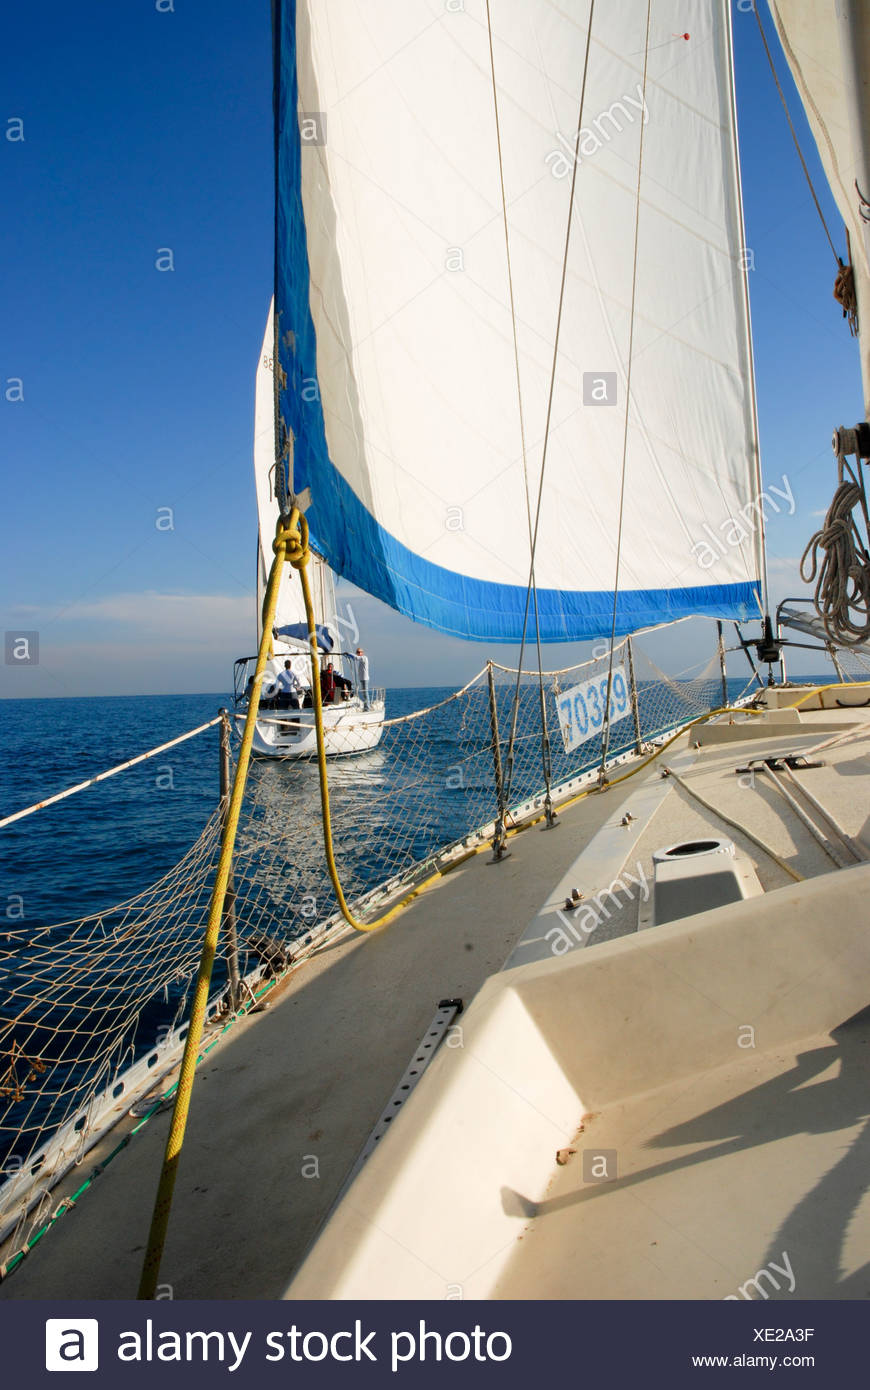 Sails of a yacht - Stock Image